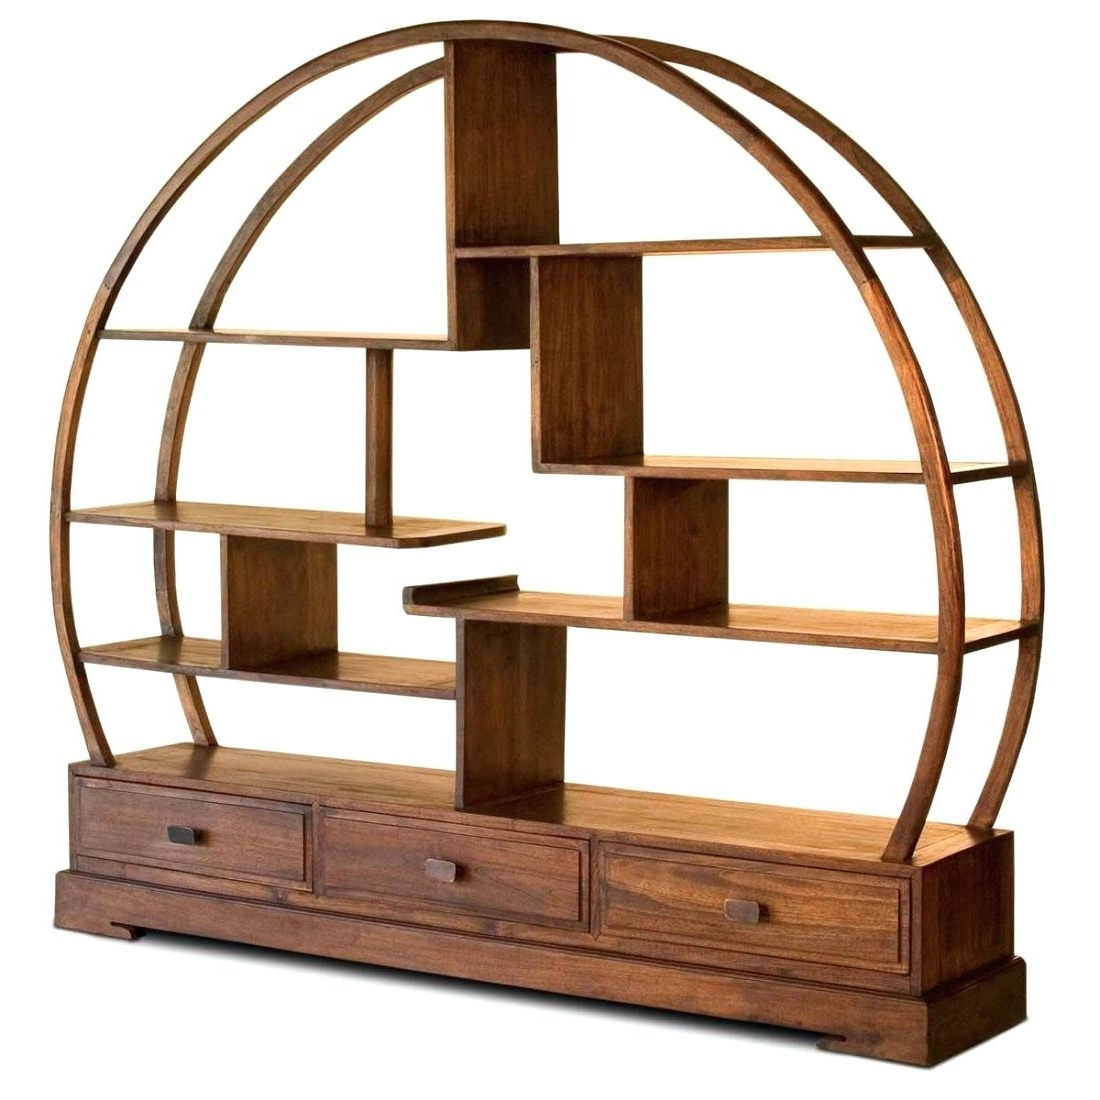 Round Bookcases With Regard To Most Recent Round Bookcase Bookcases Target Bookcases For Sale Near Me (View 10 of 15)